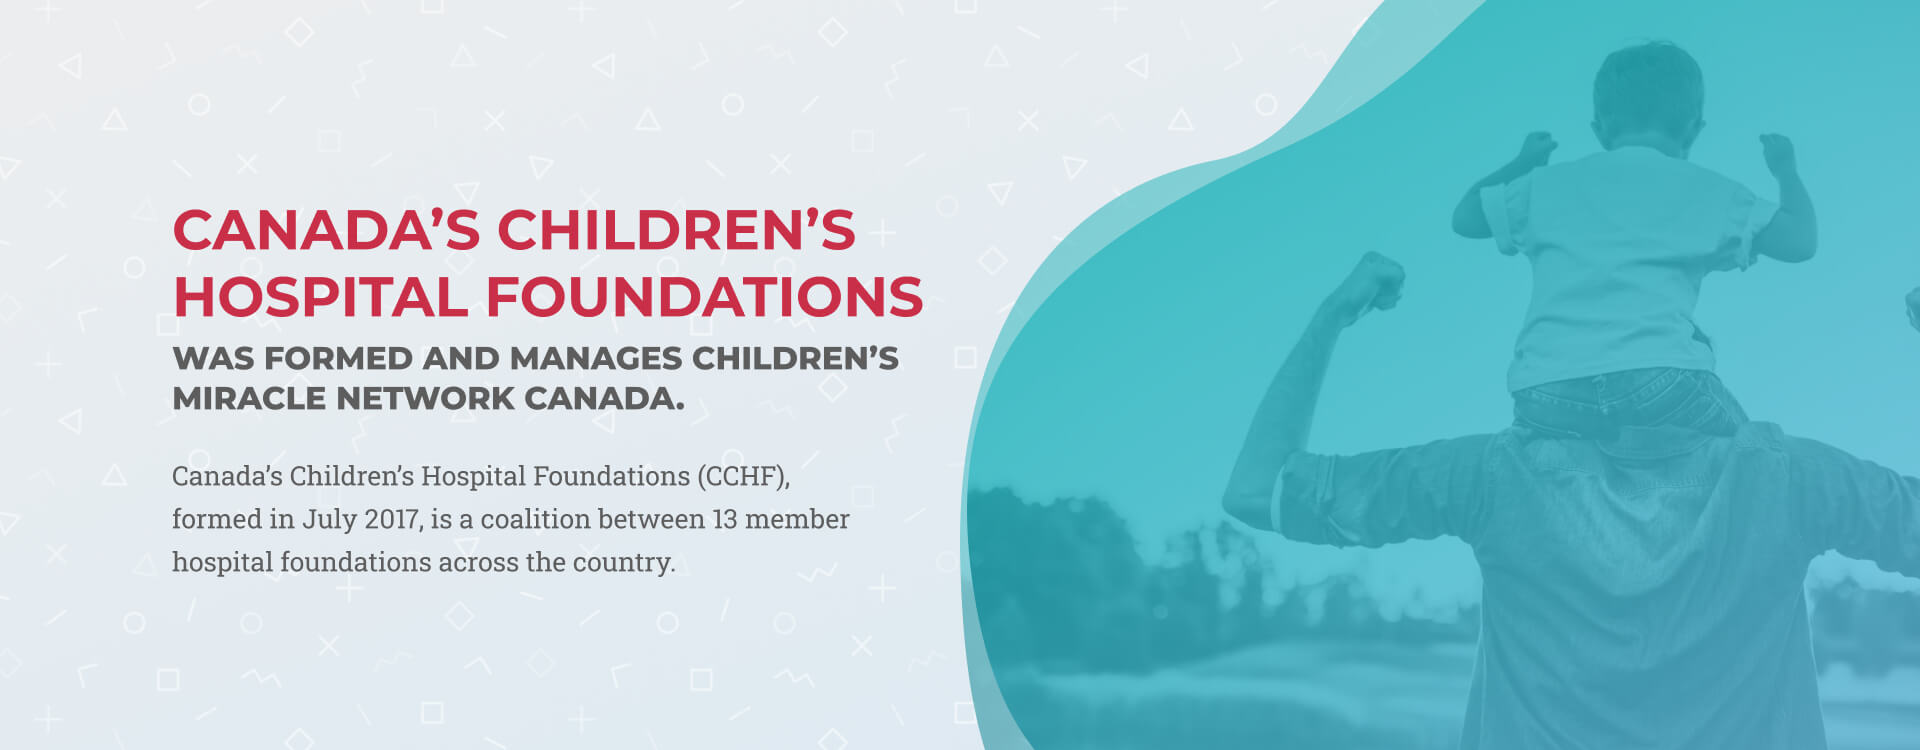 Slide 4 - Canada's Children's Hospital Foundations (CCHF), formed in July 2017, is a coalition between 13 member hospital foundations across the country.